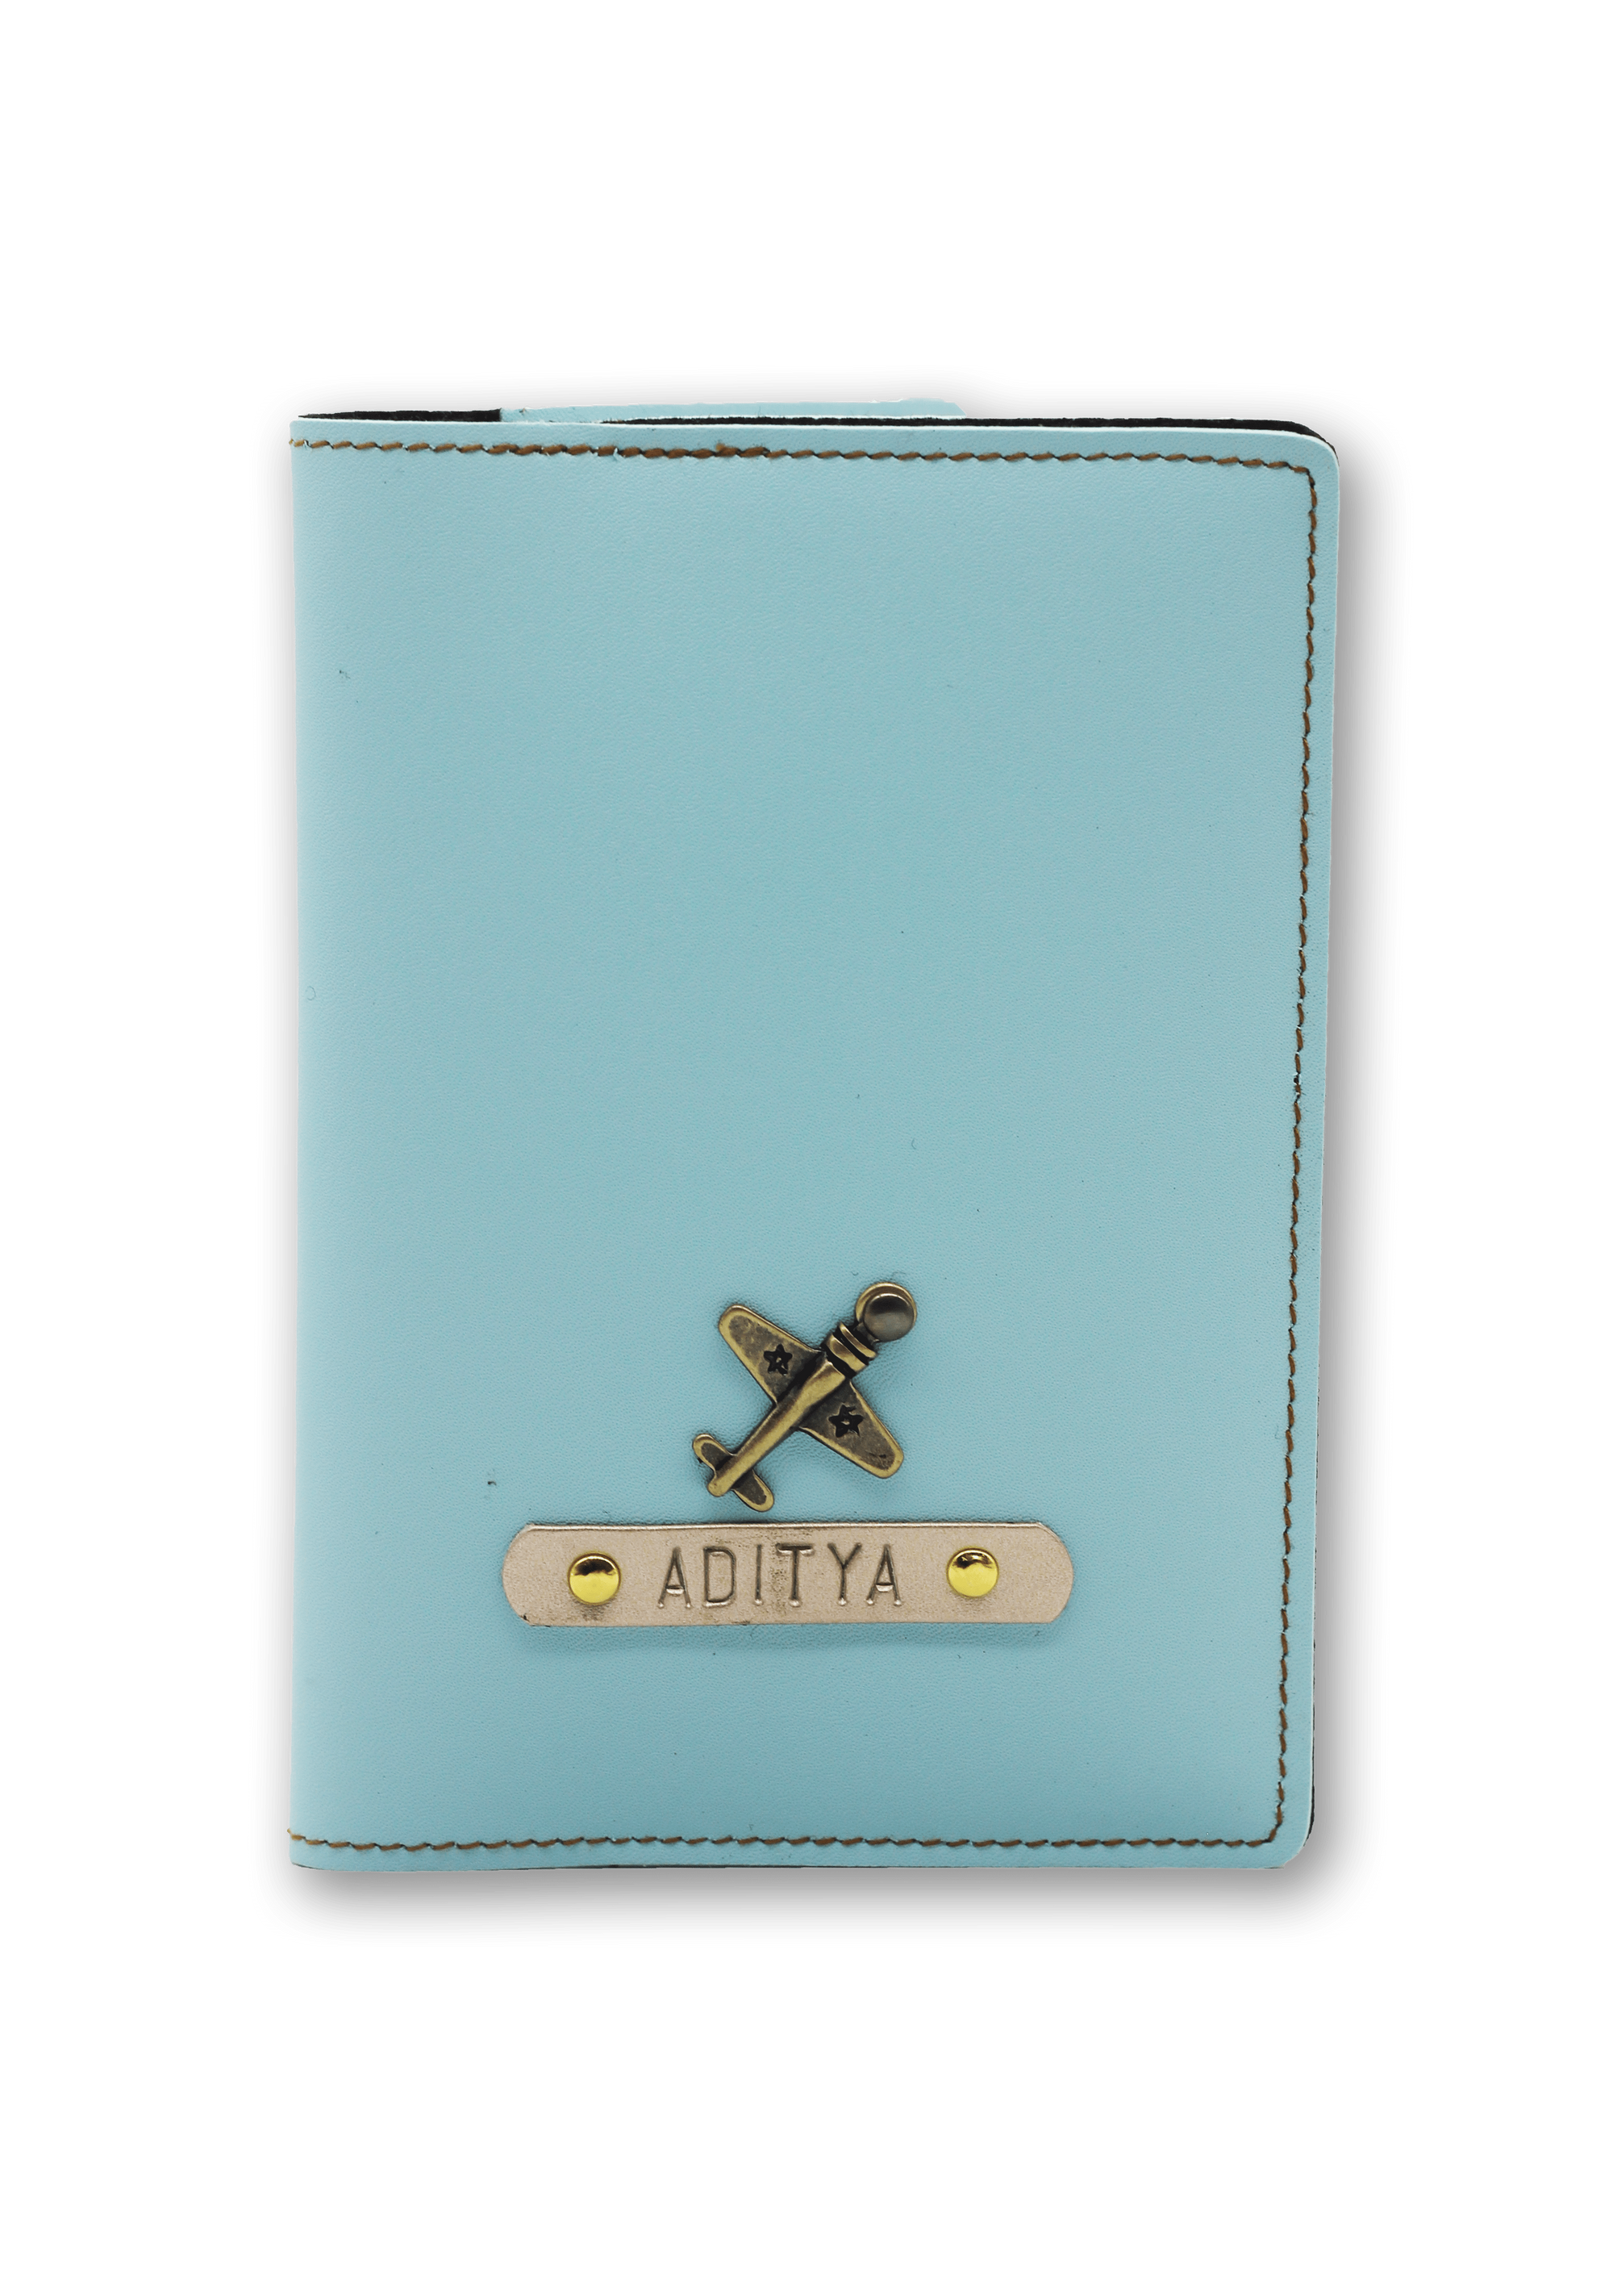 Personalized Passport Cover - Mint Blue